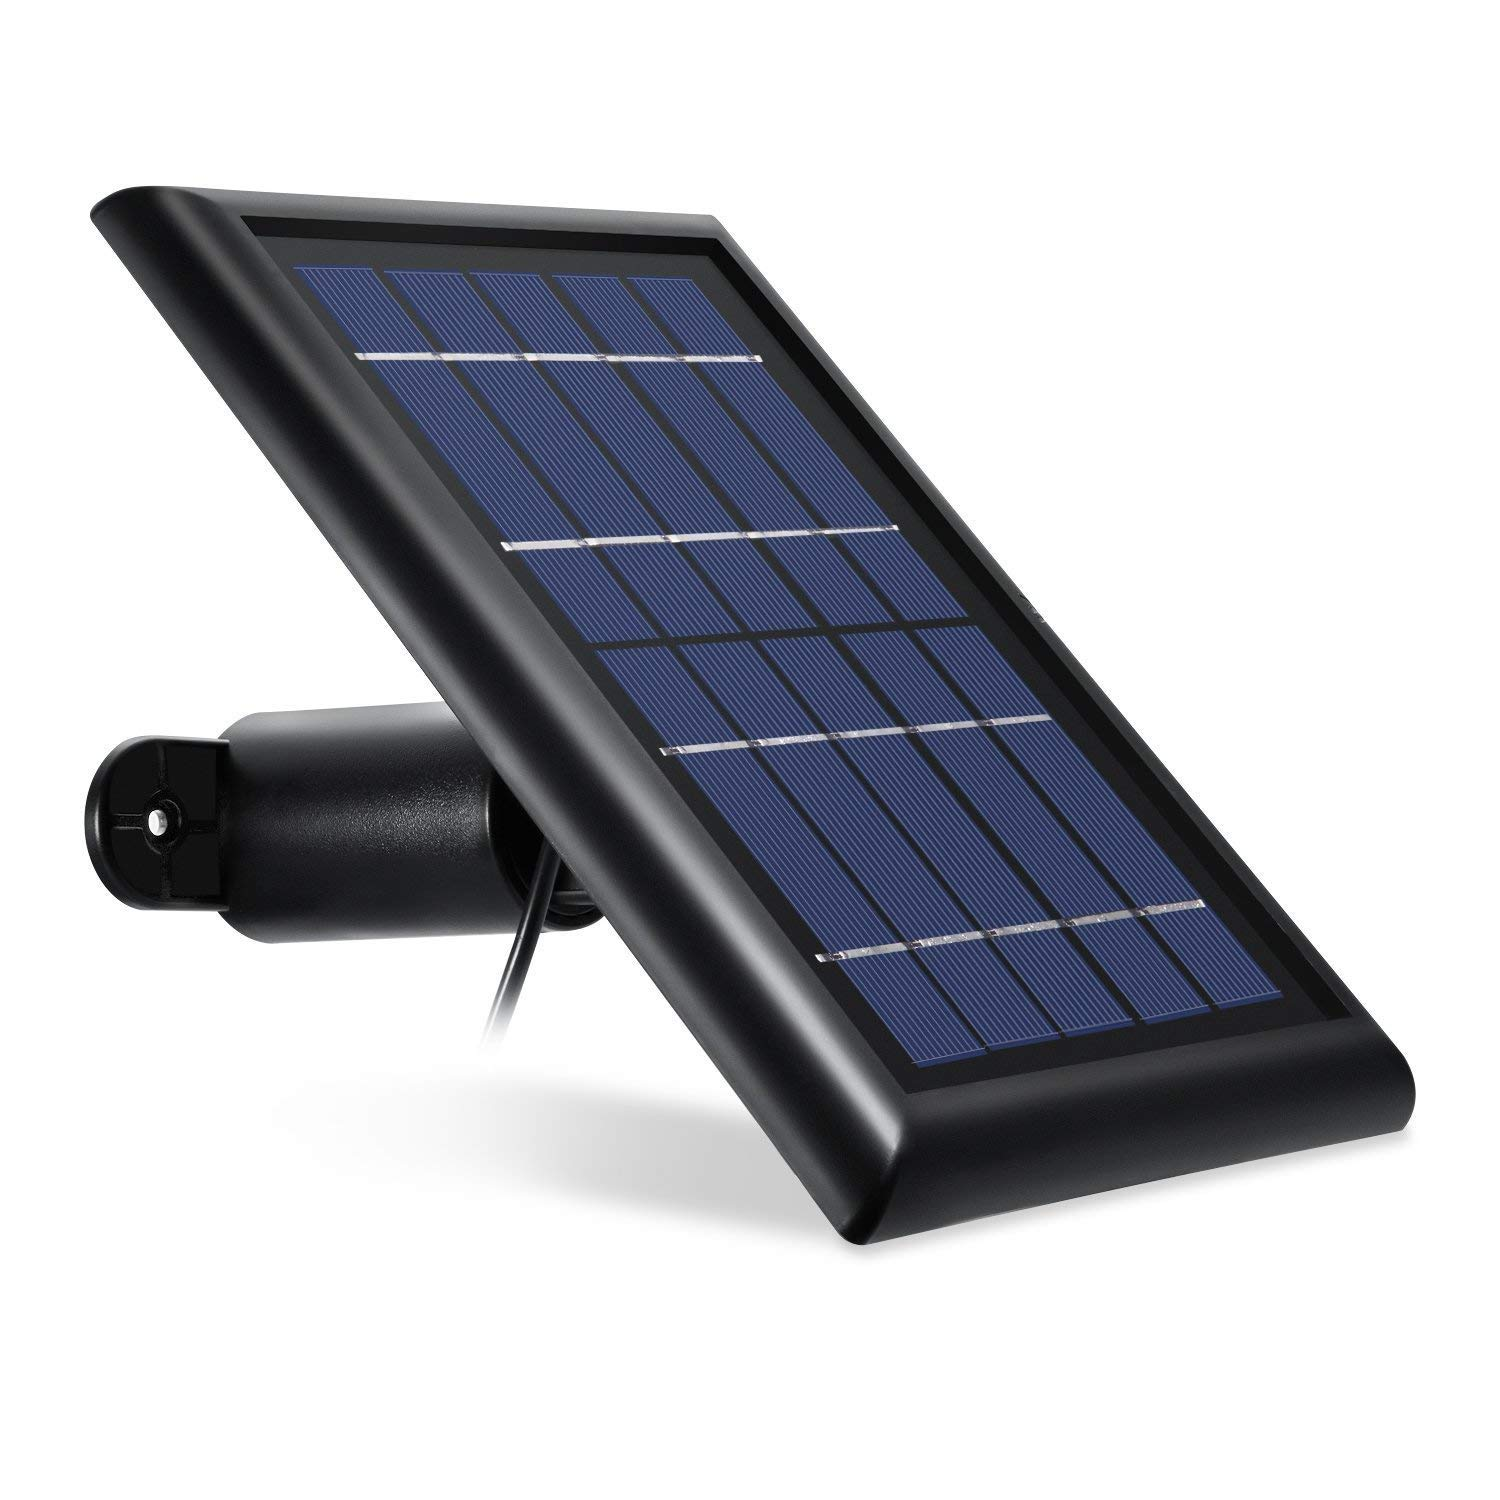 [Updated Version] Wasserstein Arlo Solar Panel Compatible with Arlo Pro, Arlo Pro 2 - Power Your Arlo Surveillance Camera continuously (Black) by Wasserstein